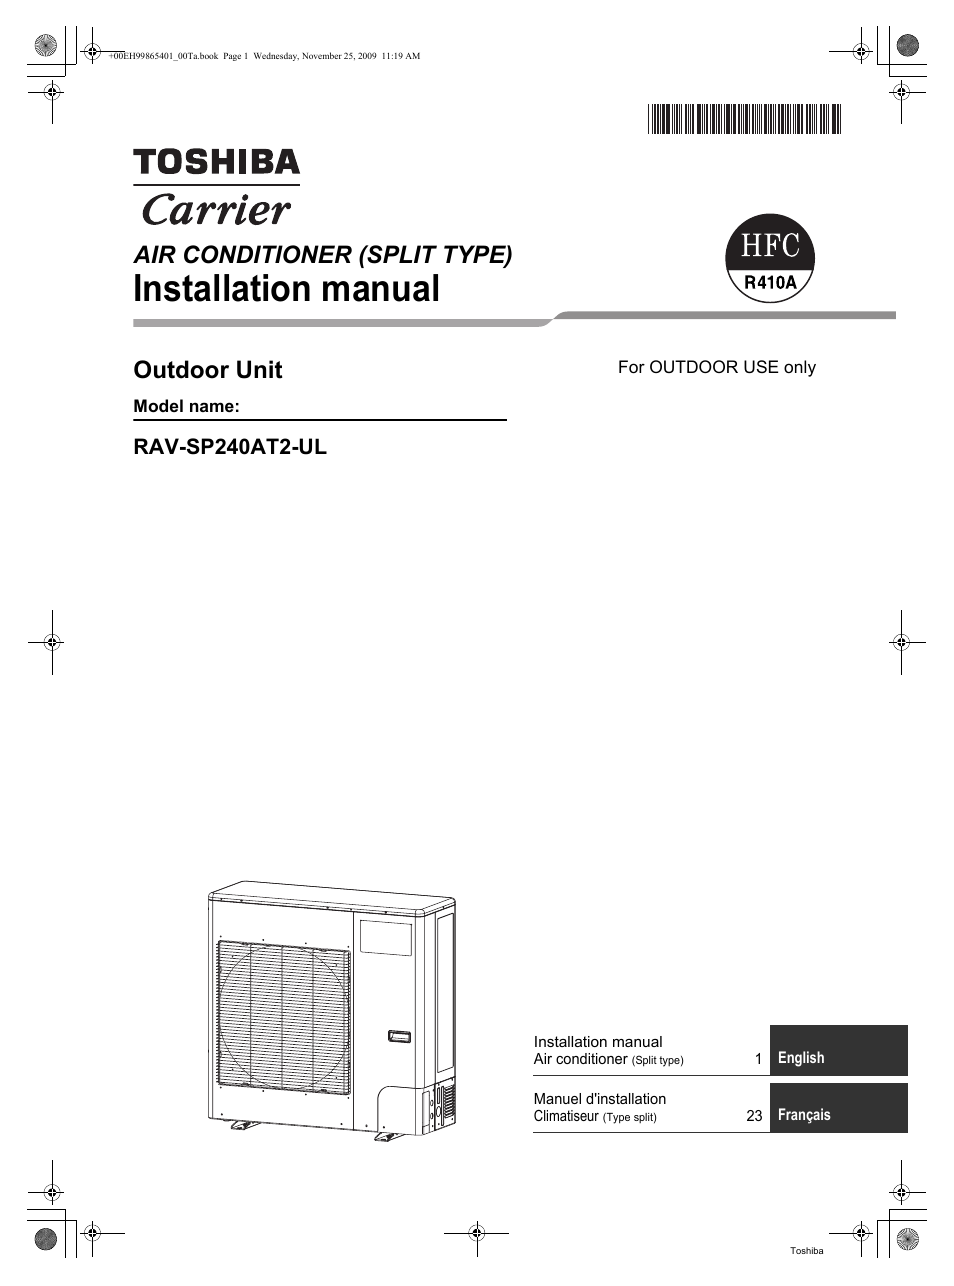 Toshiba Carrier Rav Sp240at2 Ul User Manual 24 Pages Air Conditioning Schematic 25 11